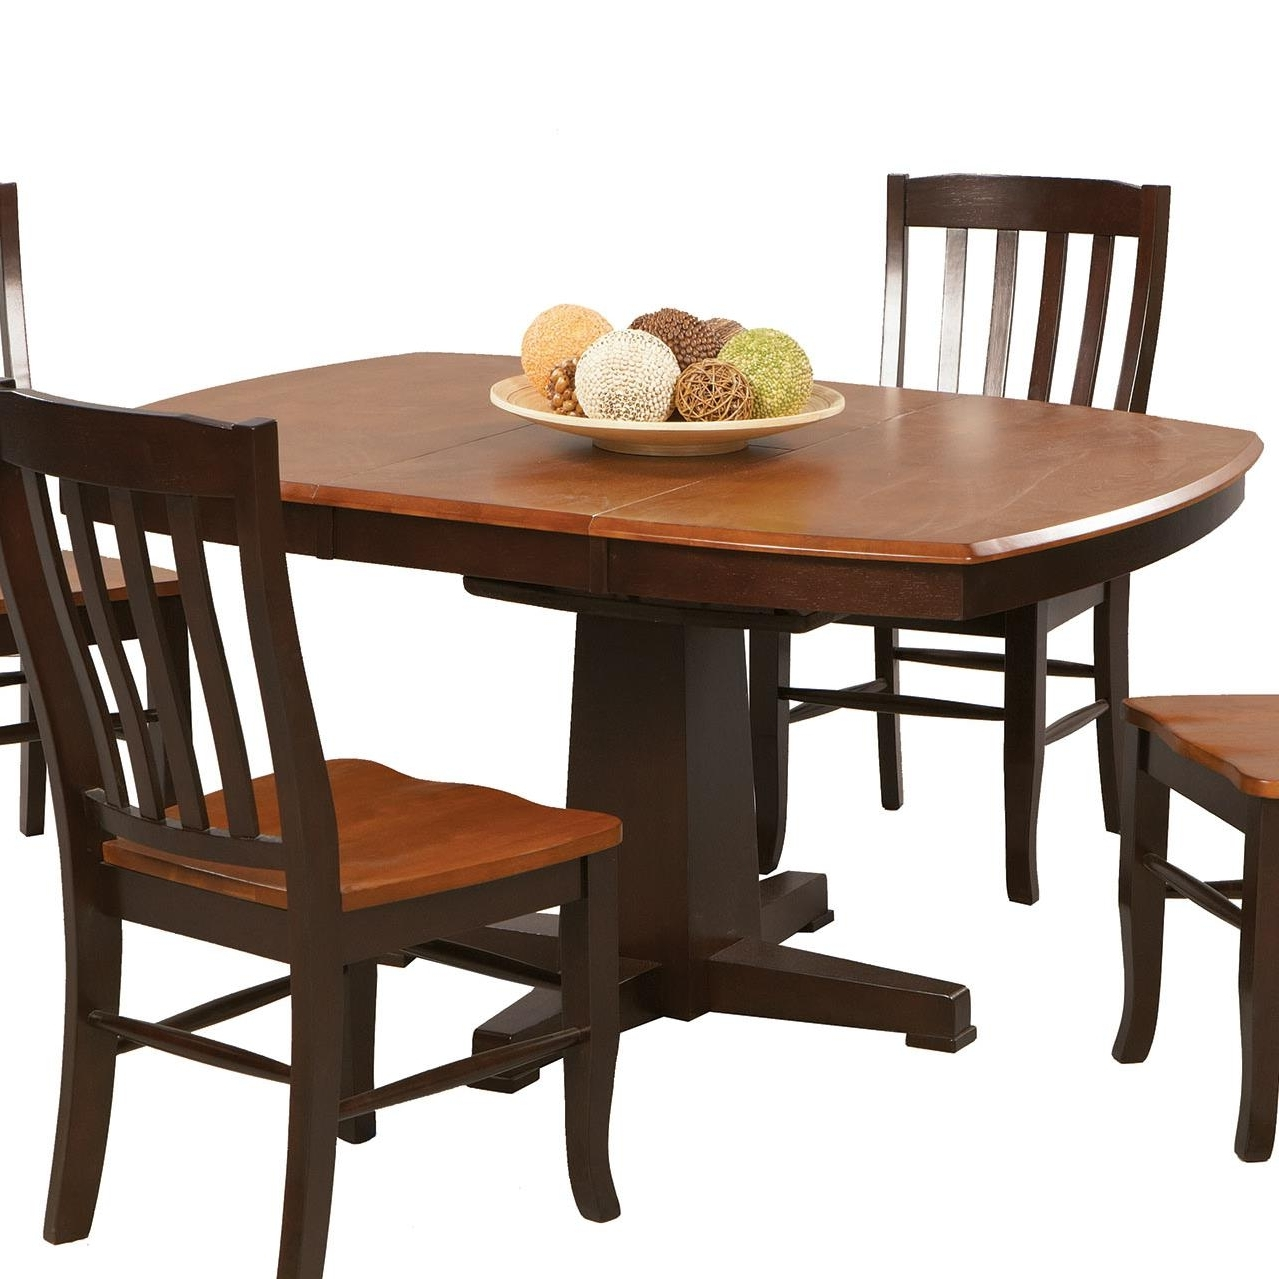 Current Lindy Espresso Rectangle Dining Tables Inside Winners Only Santa Fe – Chestnut/espresso Single Pedestal Dining (View 8 of 25)